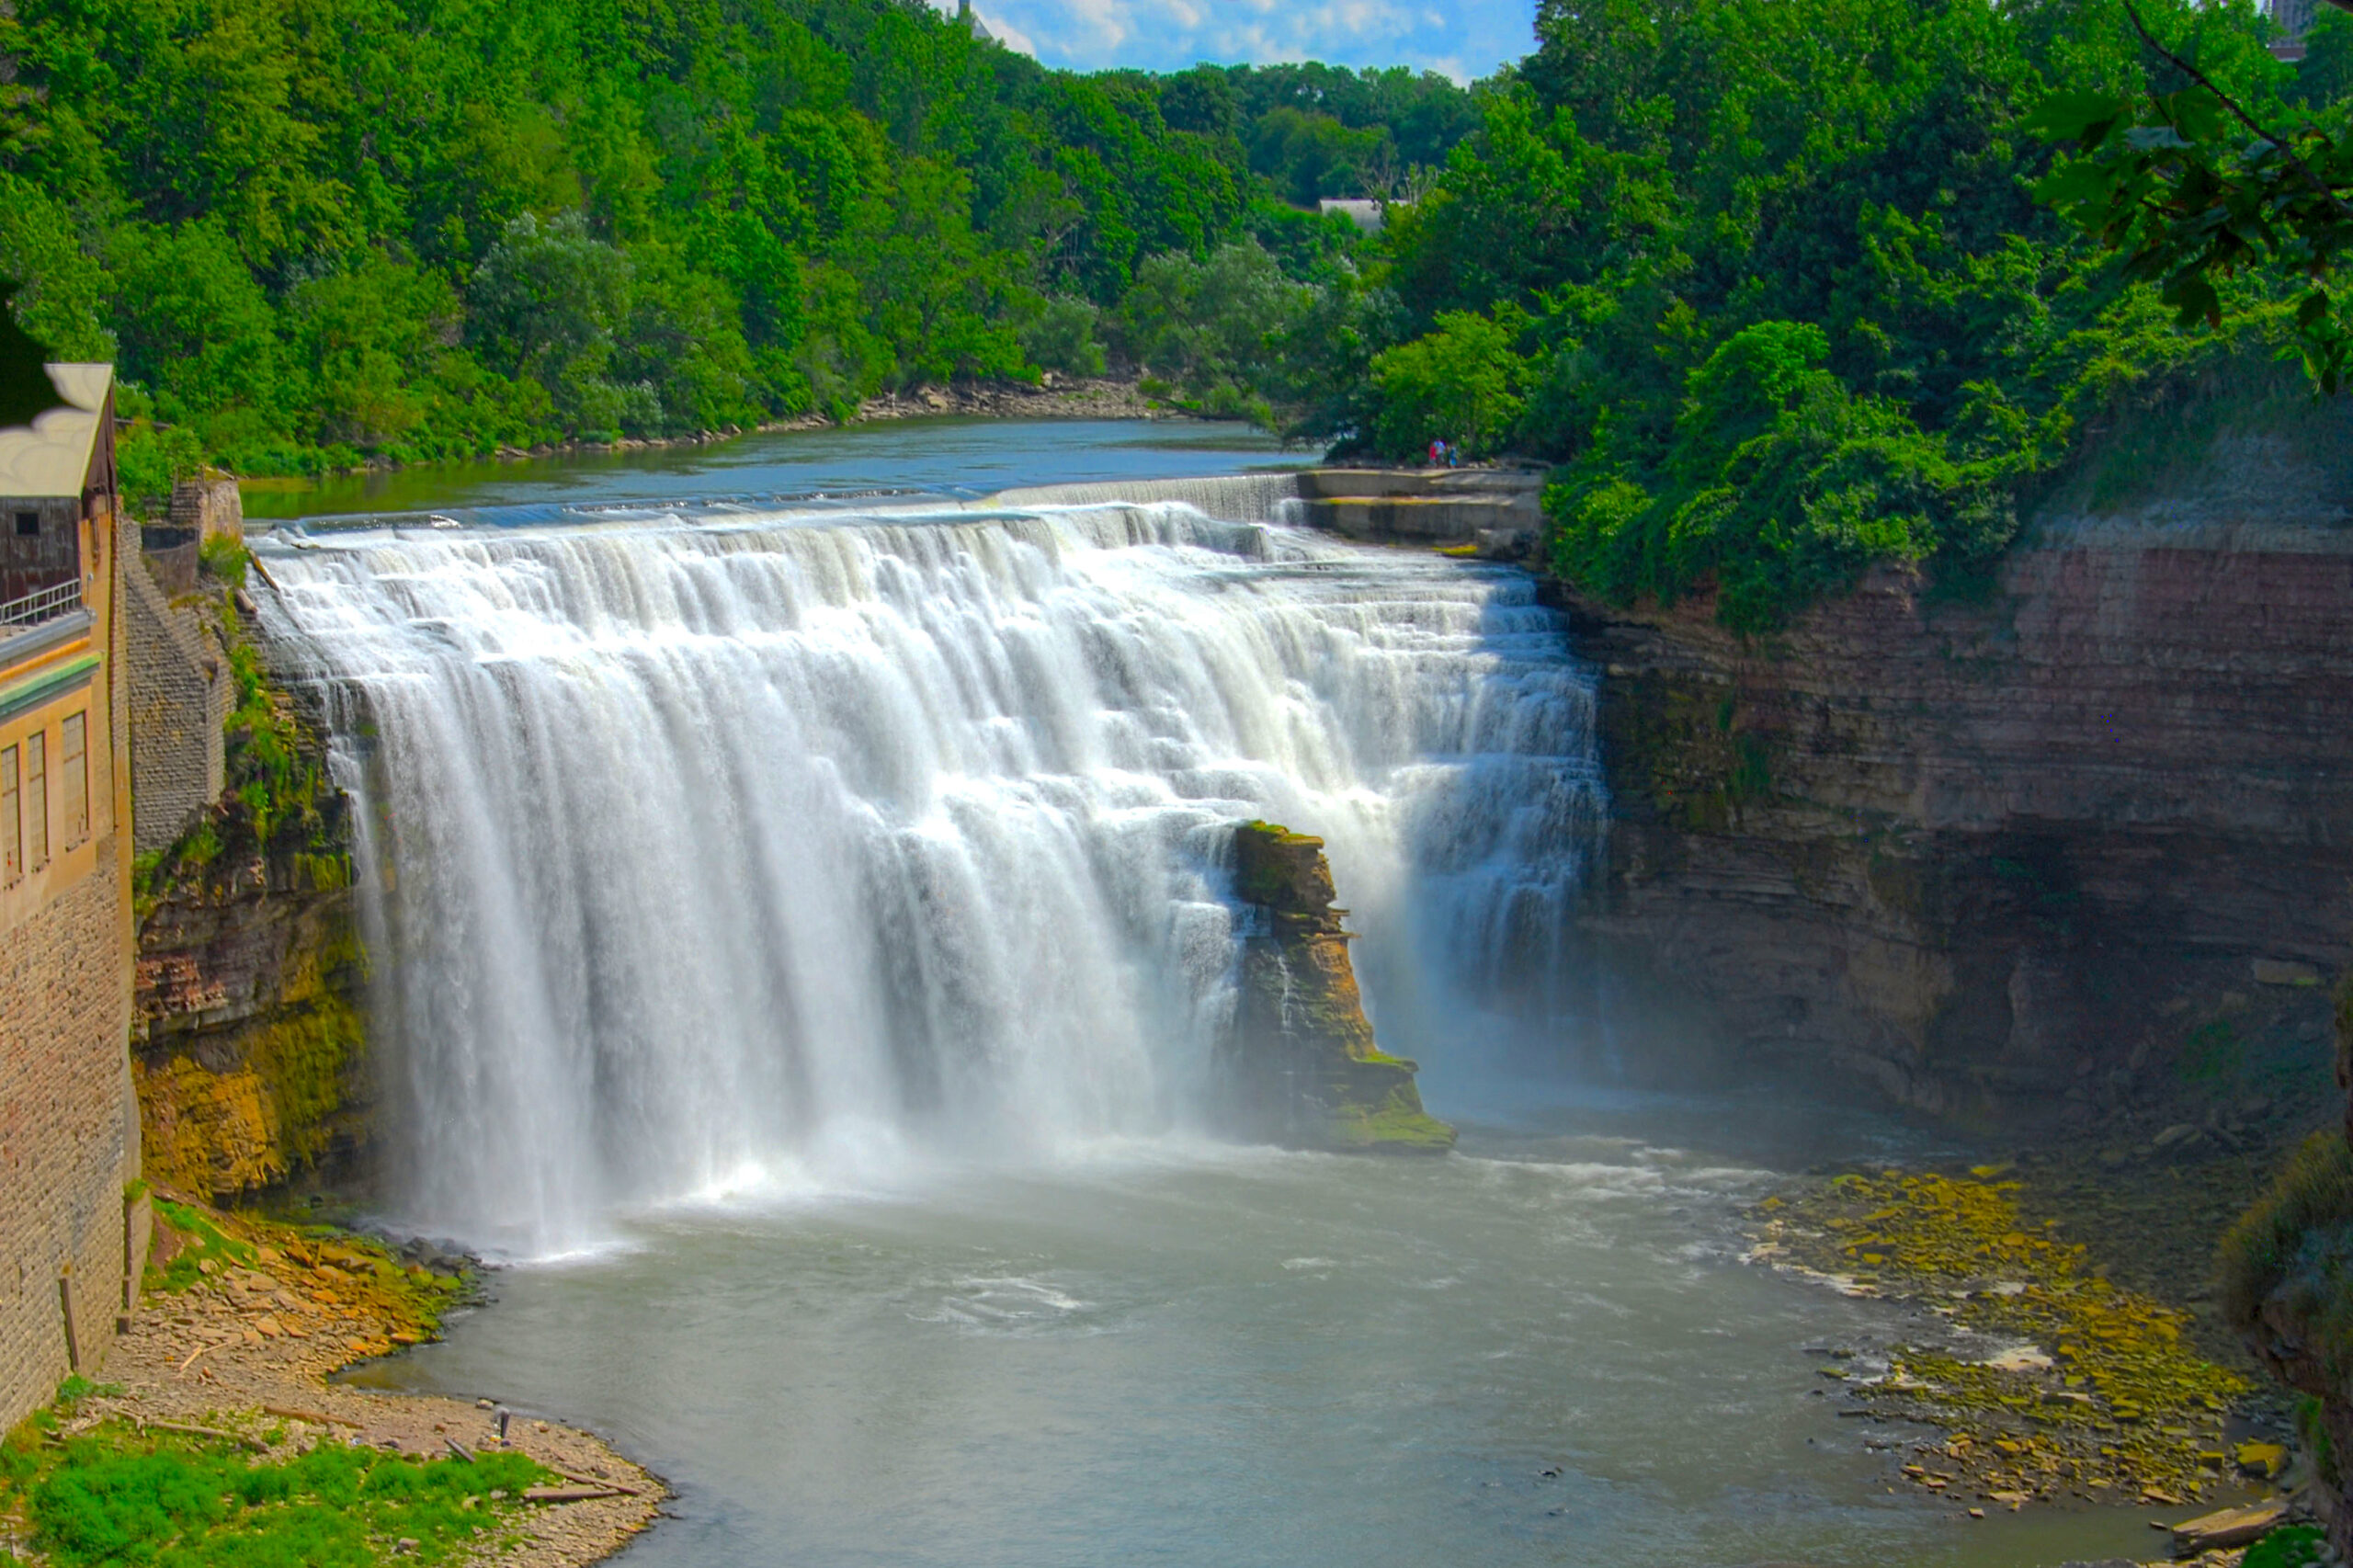 Lower Falls of the Genesee River in Rochester, NY.